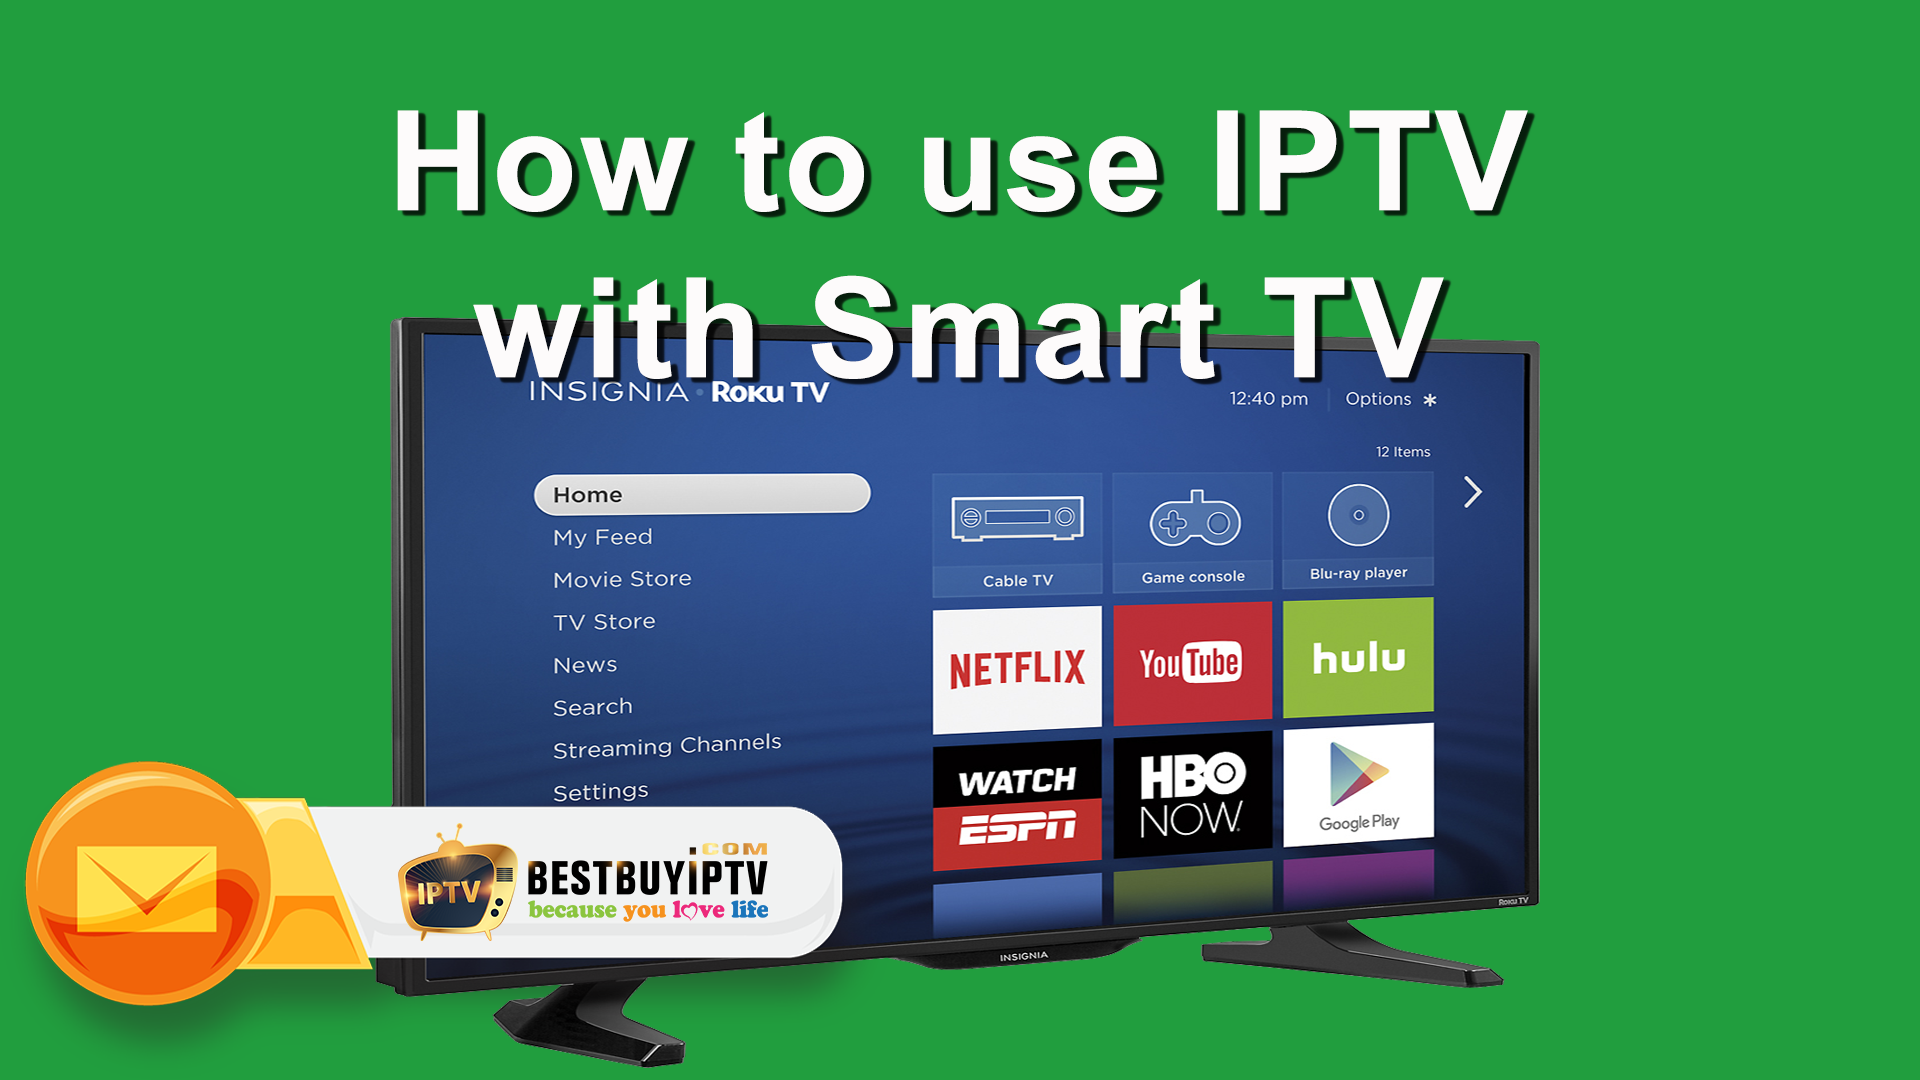 how-to-use-iptv-with-smart-tv